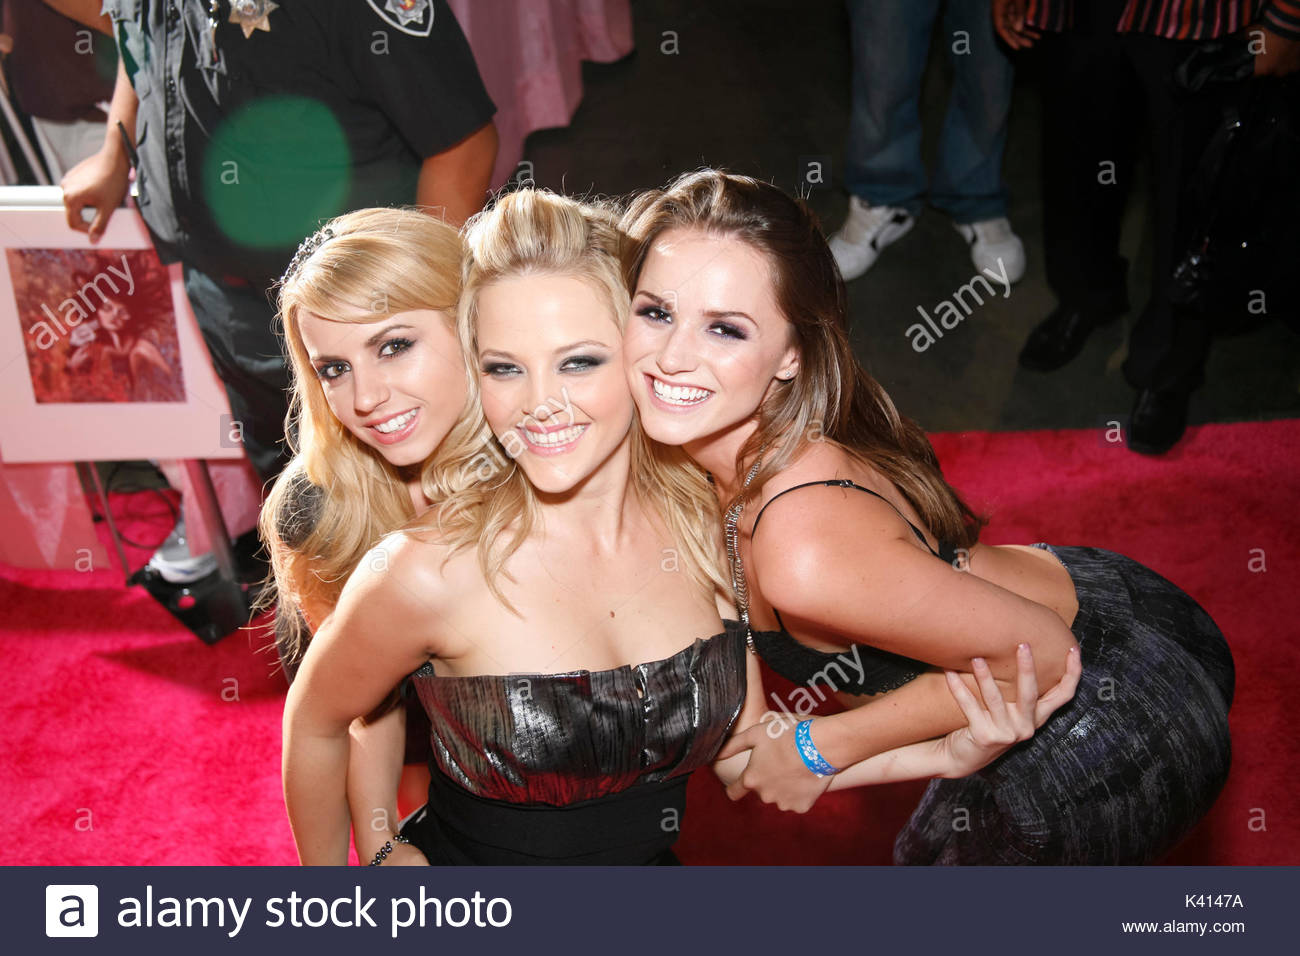 Tori Black Alexis Texas And Lexi Belle The F A M E Awards At Exxxotica The Largest Adult Consumer Show In The Country At The Los Angeles Convention